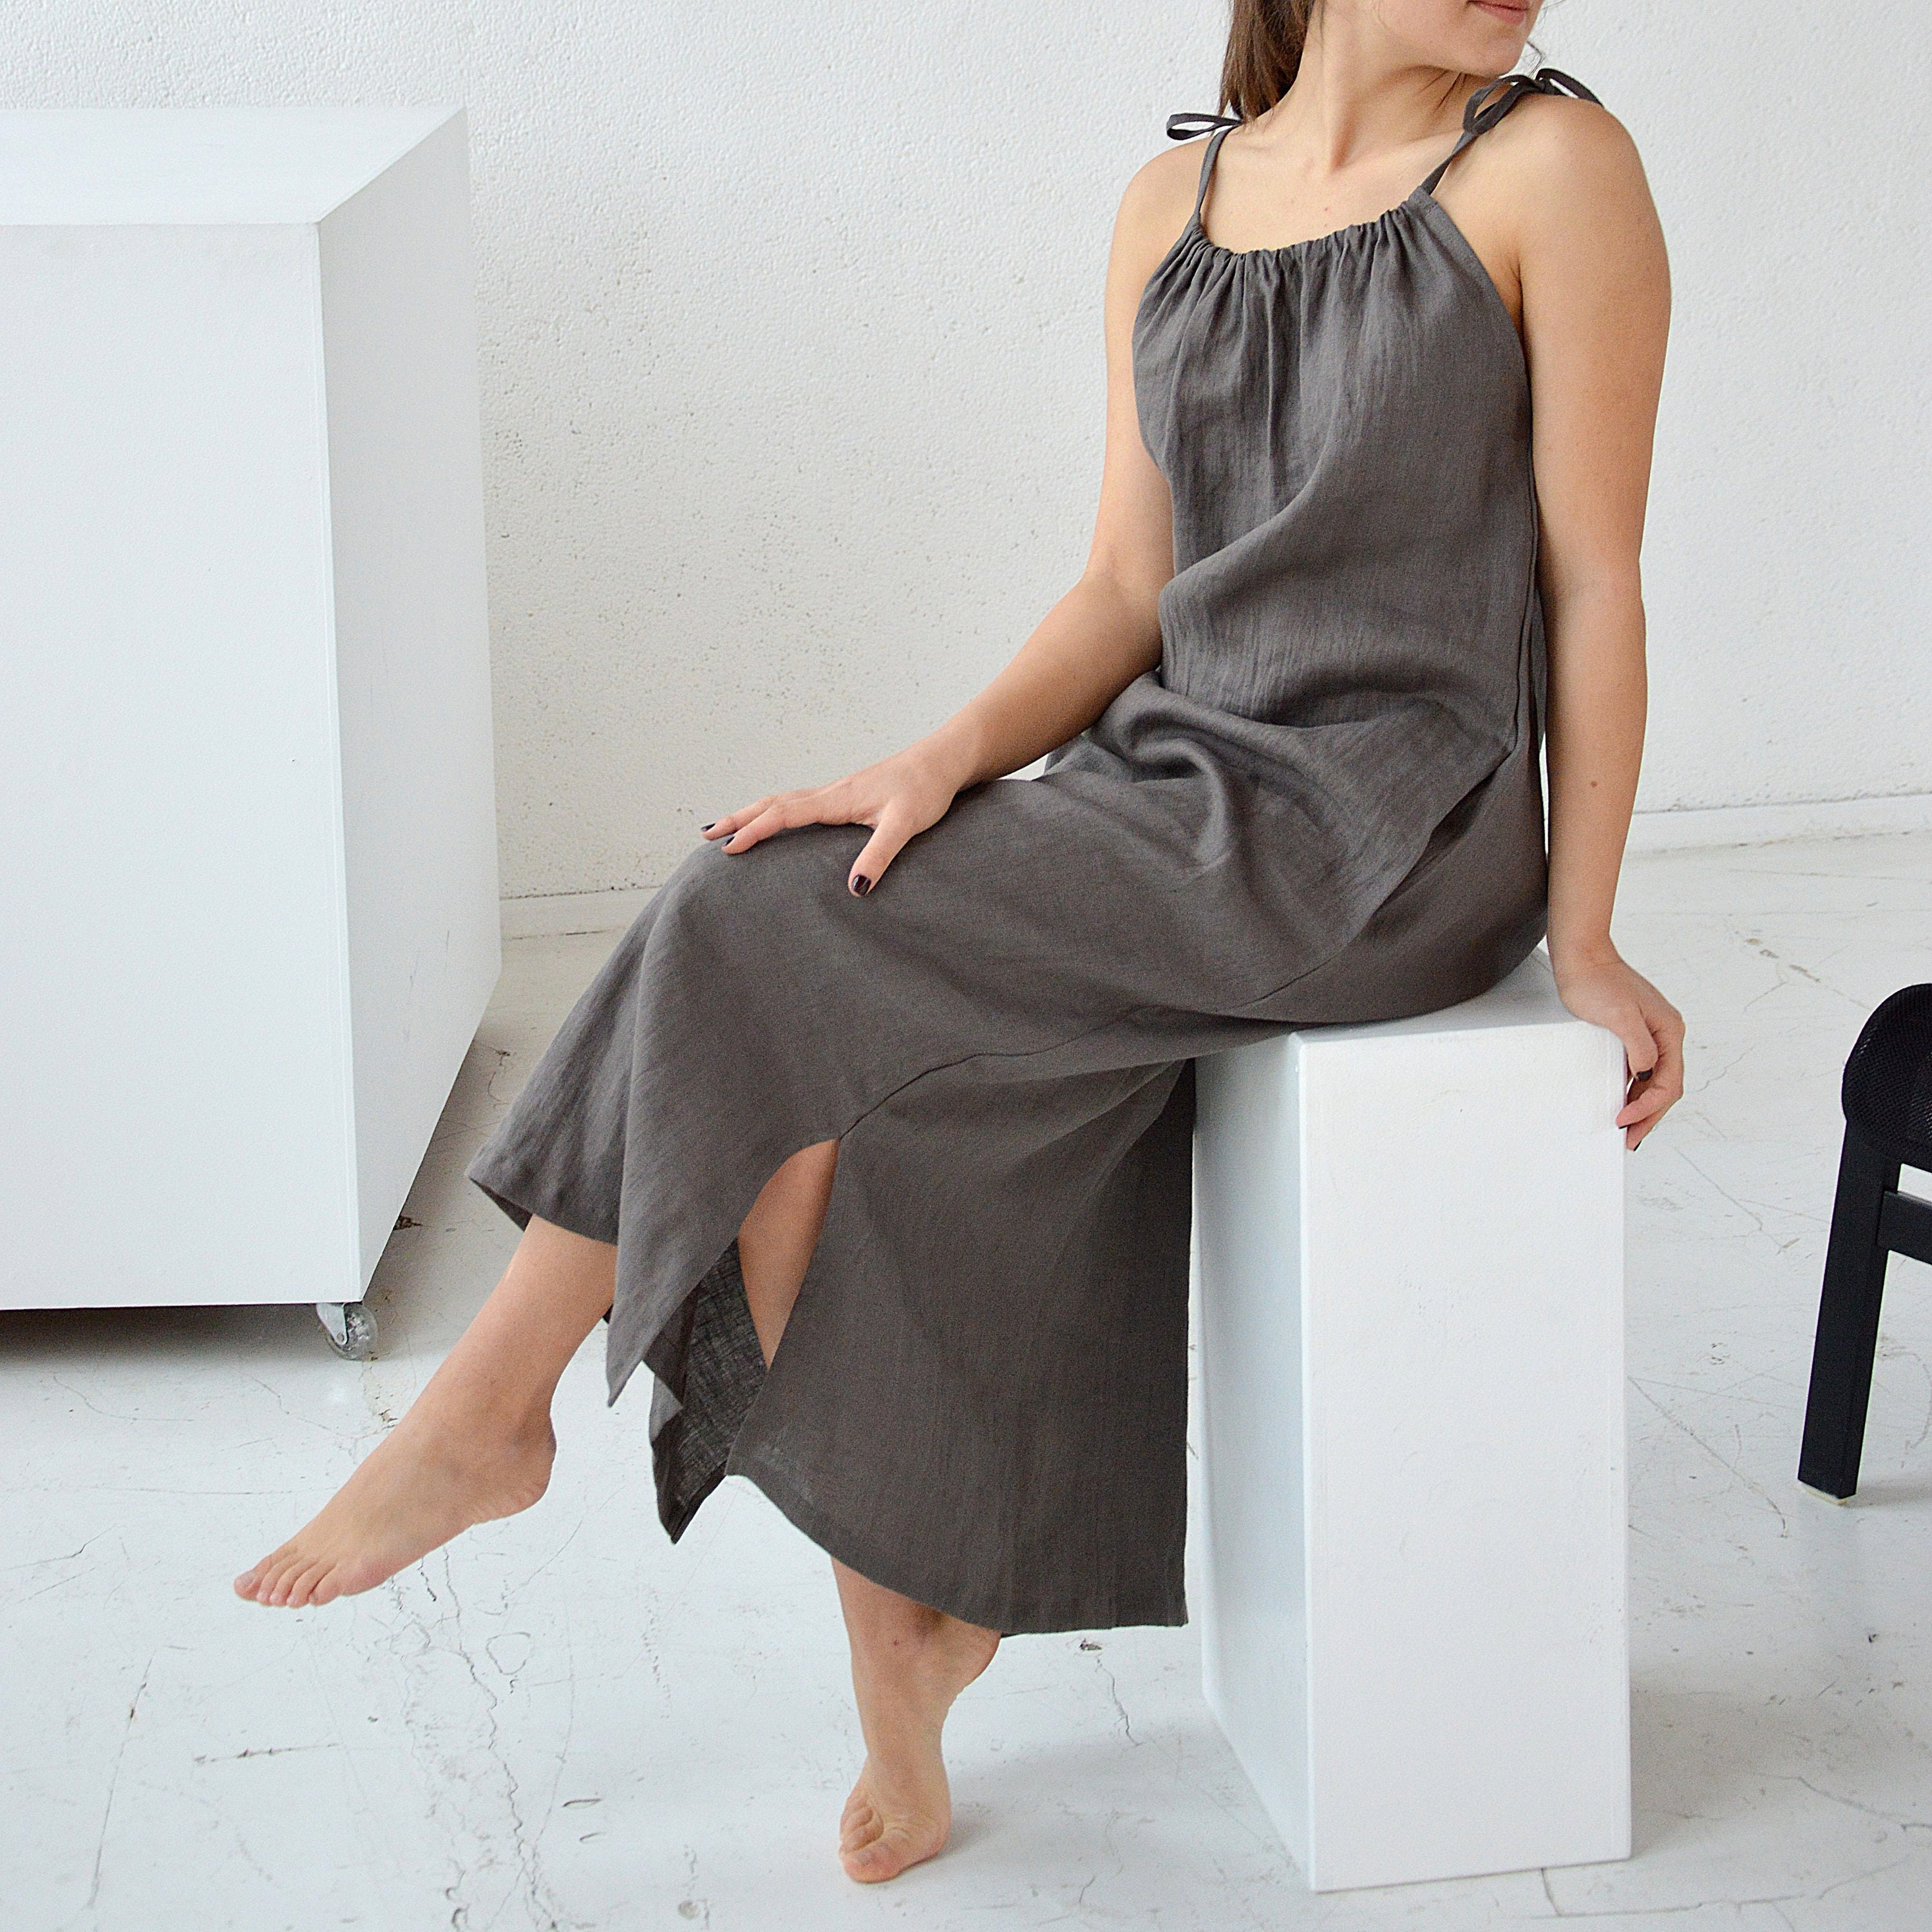 856a84602c READY TO SHIP - S size - Weathered wood long linen dress - Handmade dress -  Soft linen dress with regulating straps